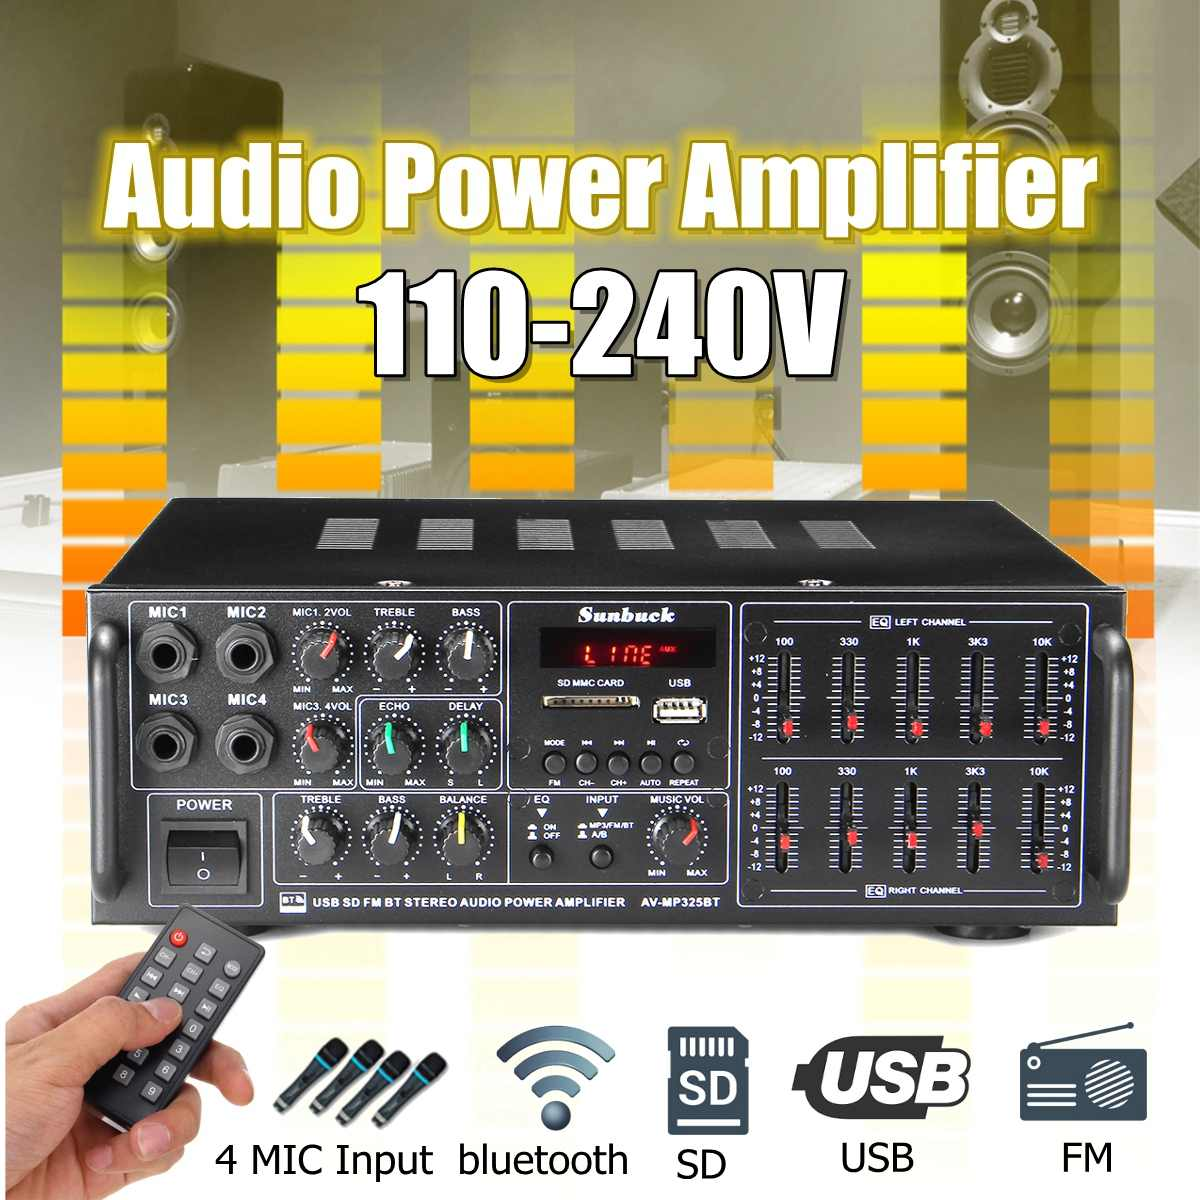 2000W 110V-220V Home Car Bluetooth Power Amplifier With Remote Control HiFi Stereo Digital AMP 2x Mic AUX USB SD Card With EQ